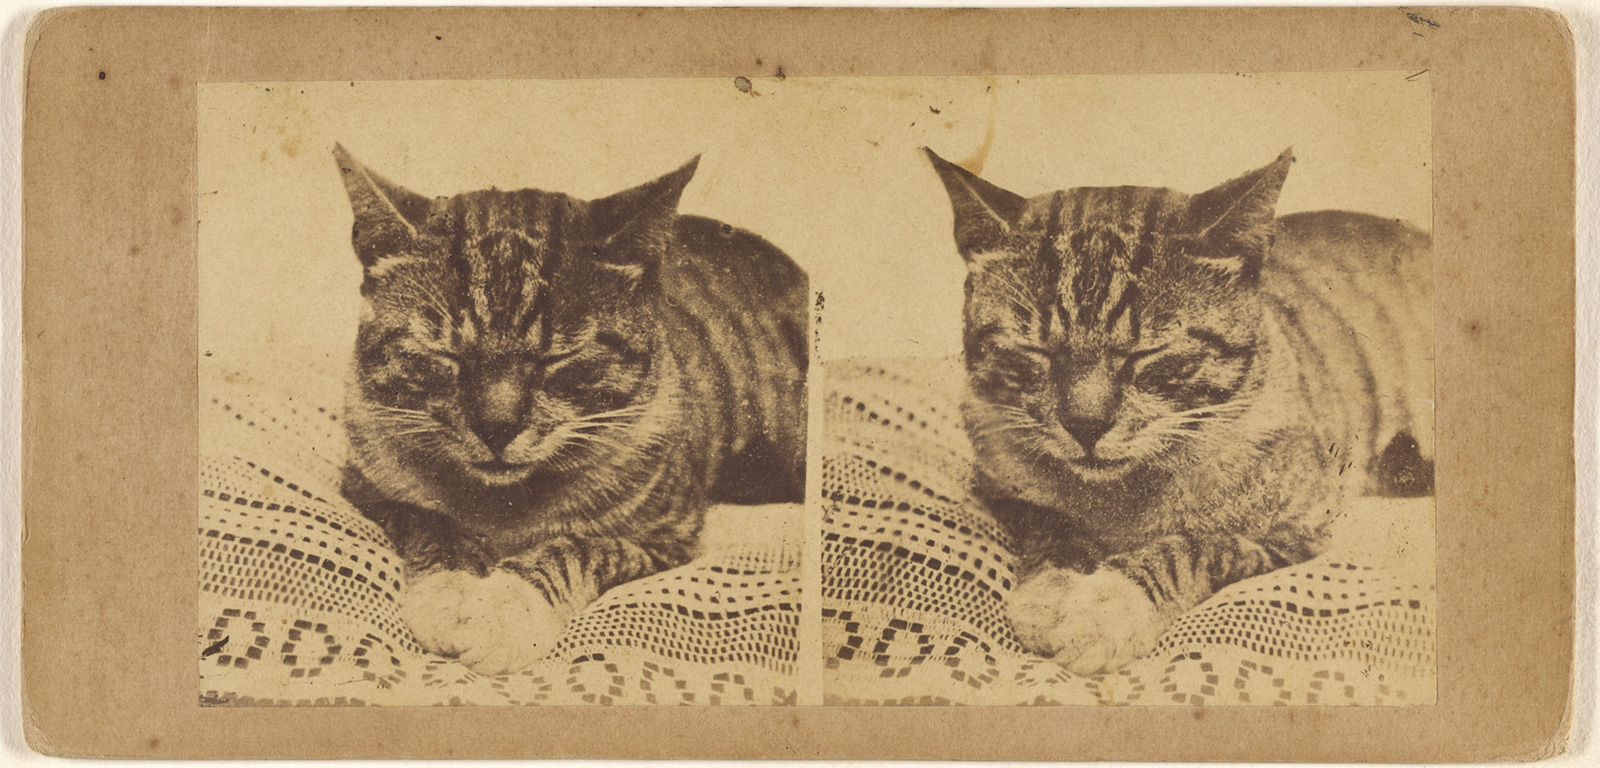 Side by side images of a tabby cat resting on a lace-covered pillow or cushion with eyes closed.